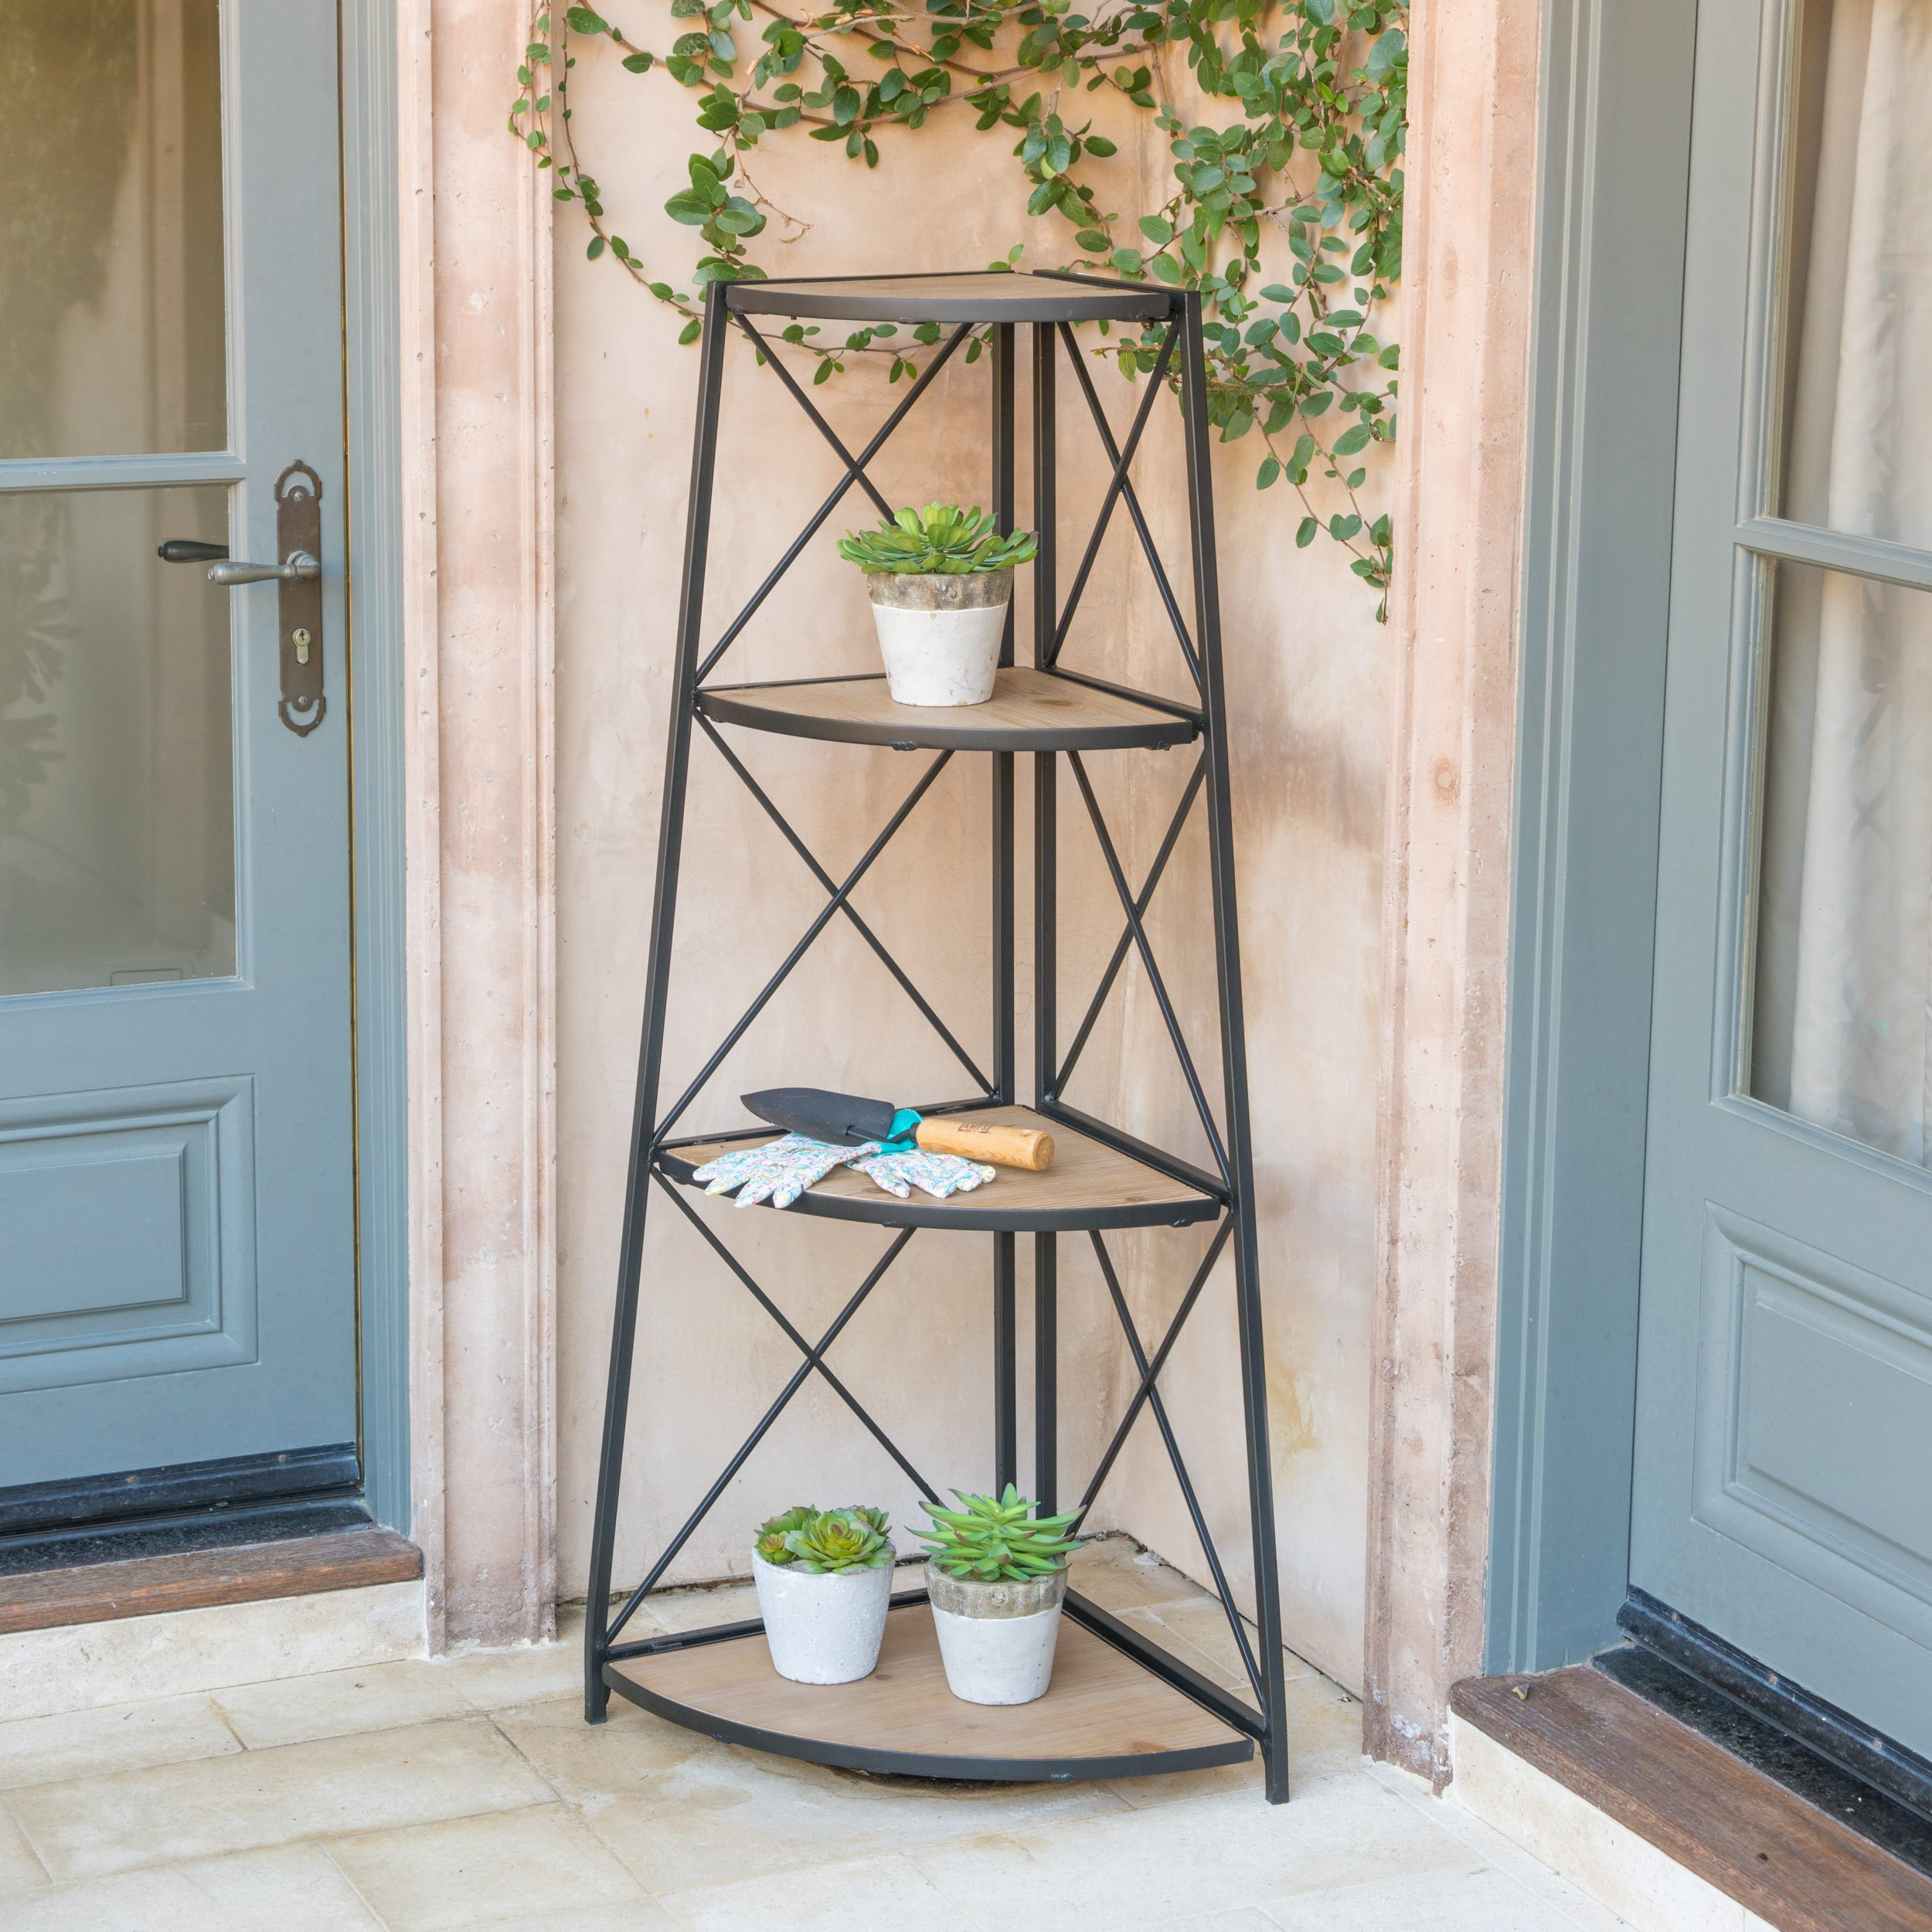 Great Deal Furniture Trisha Outdoor Industrial Naturally Antique Firwood 3-Tier Corner Shelf with Black Finished Iron Frame